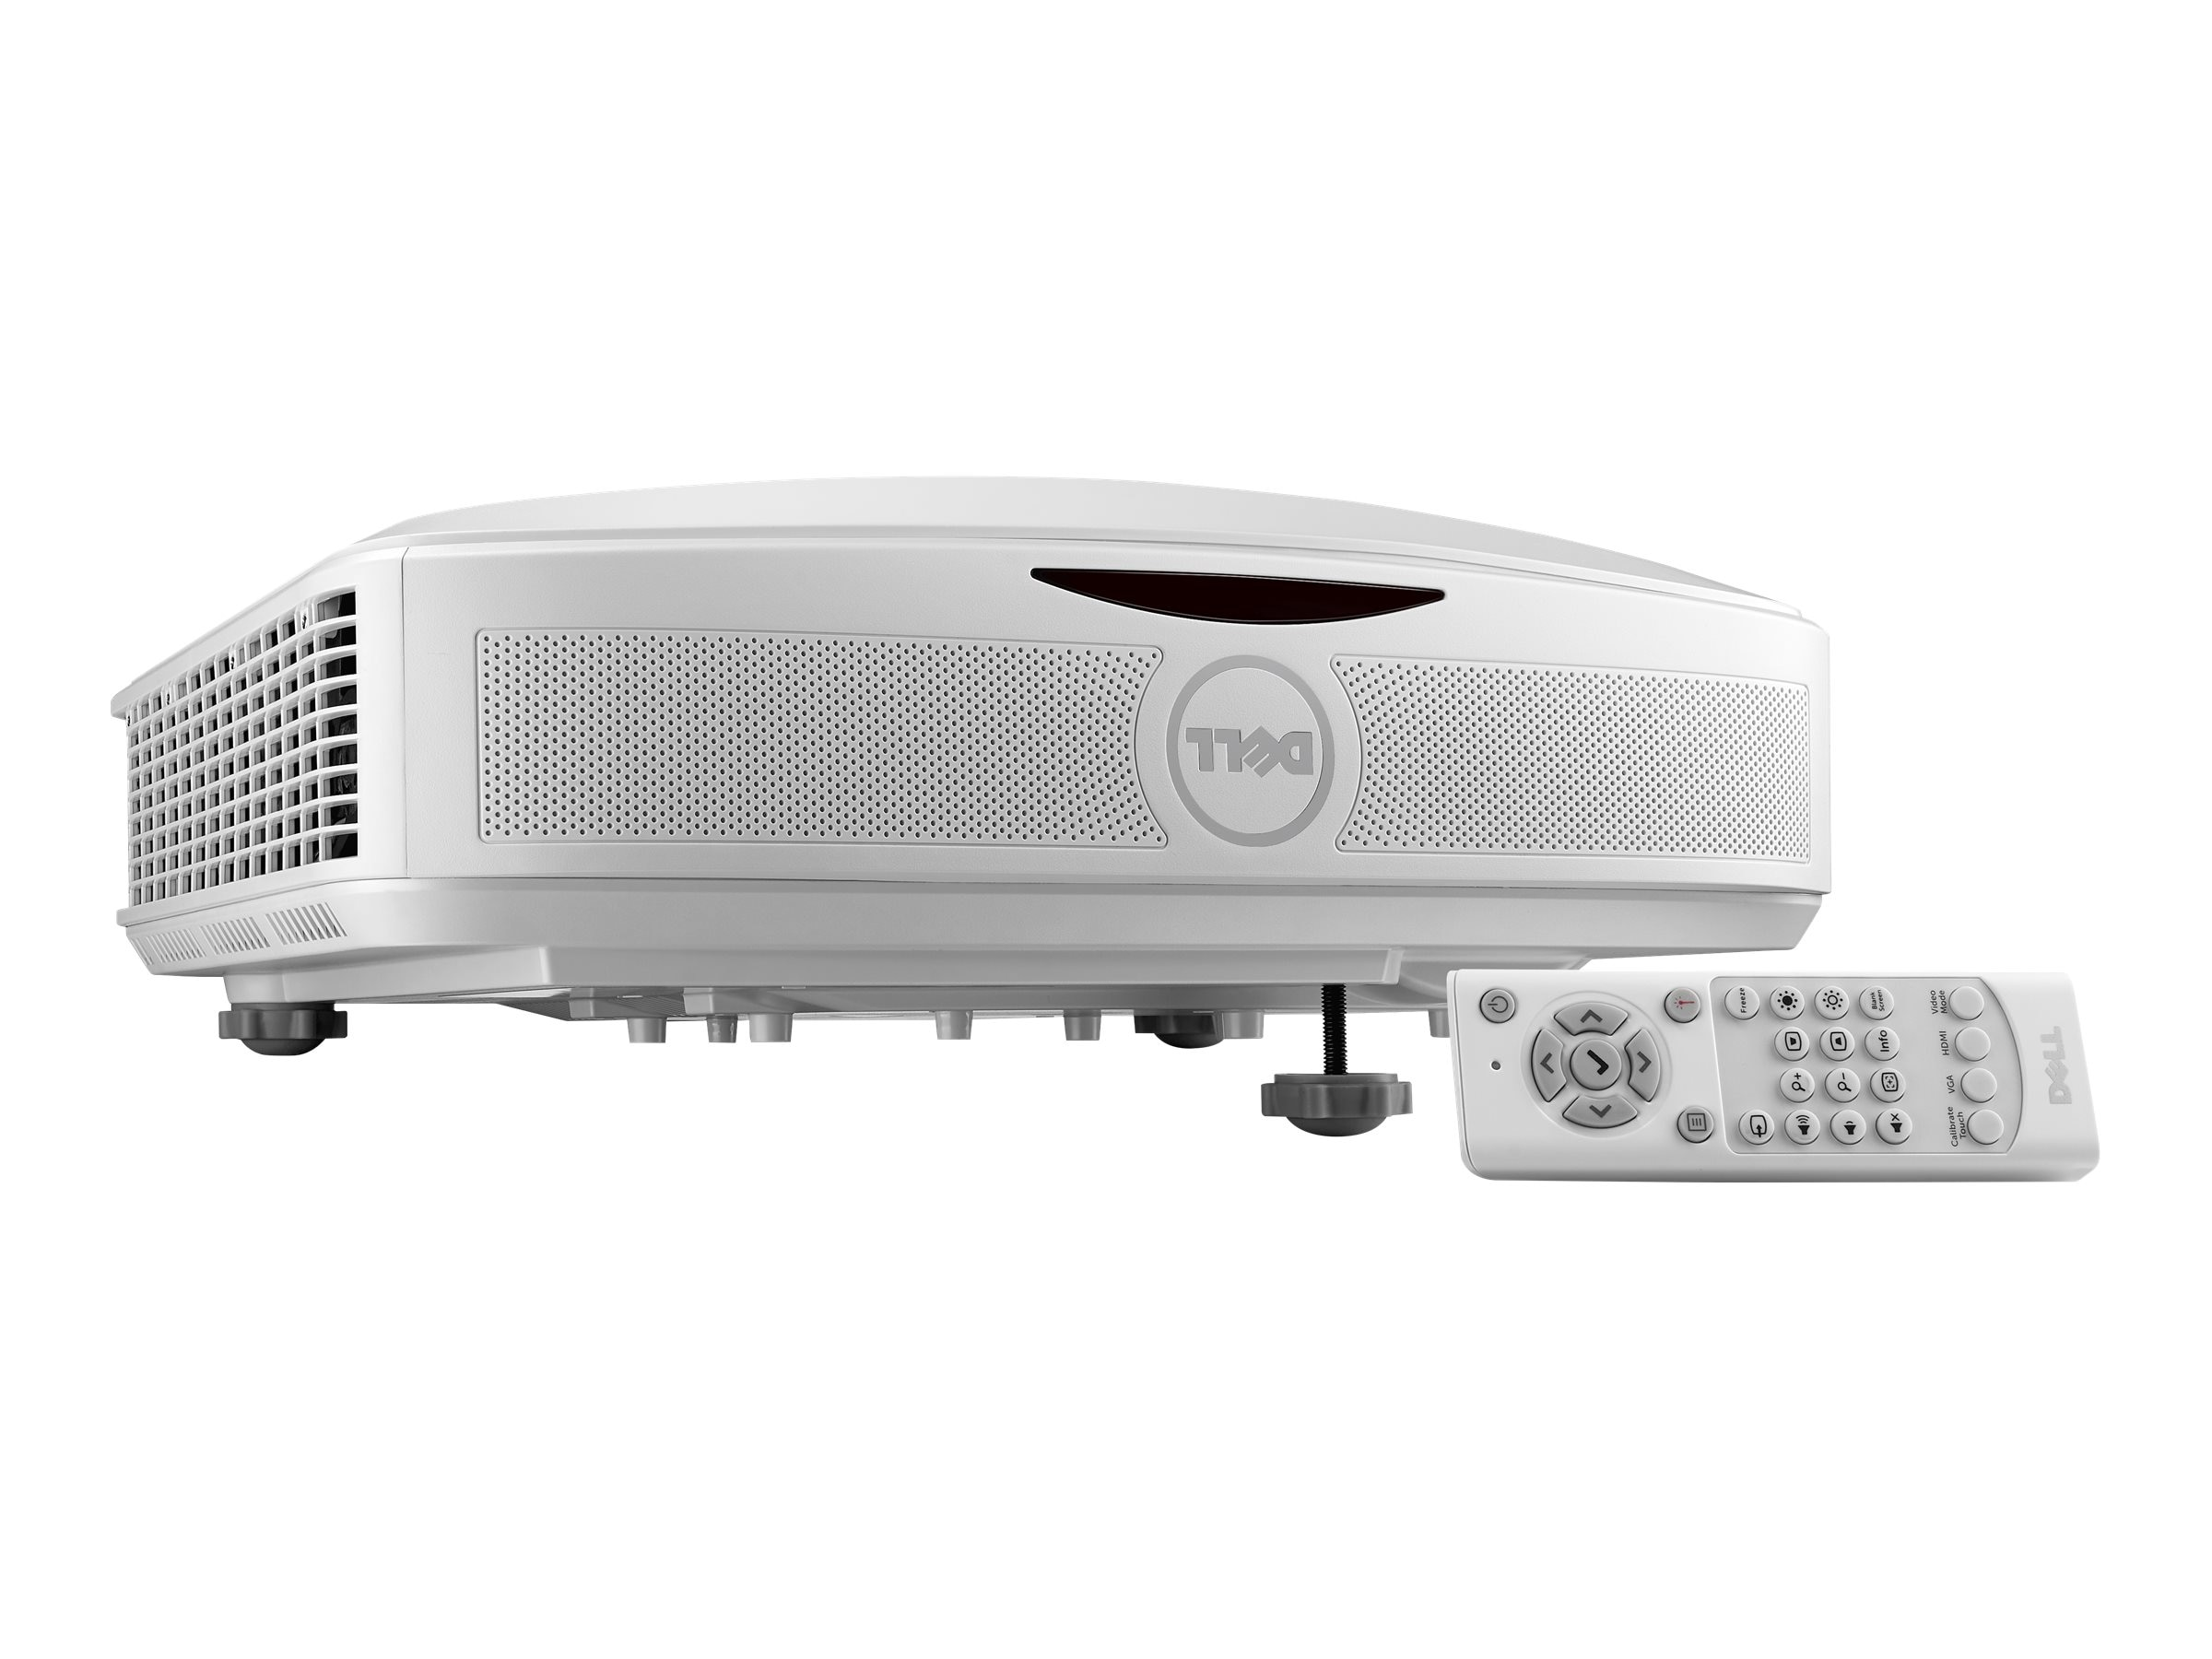 Dell S560P 1080p DLP Projector with Speakers, 3400 Lumens, White